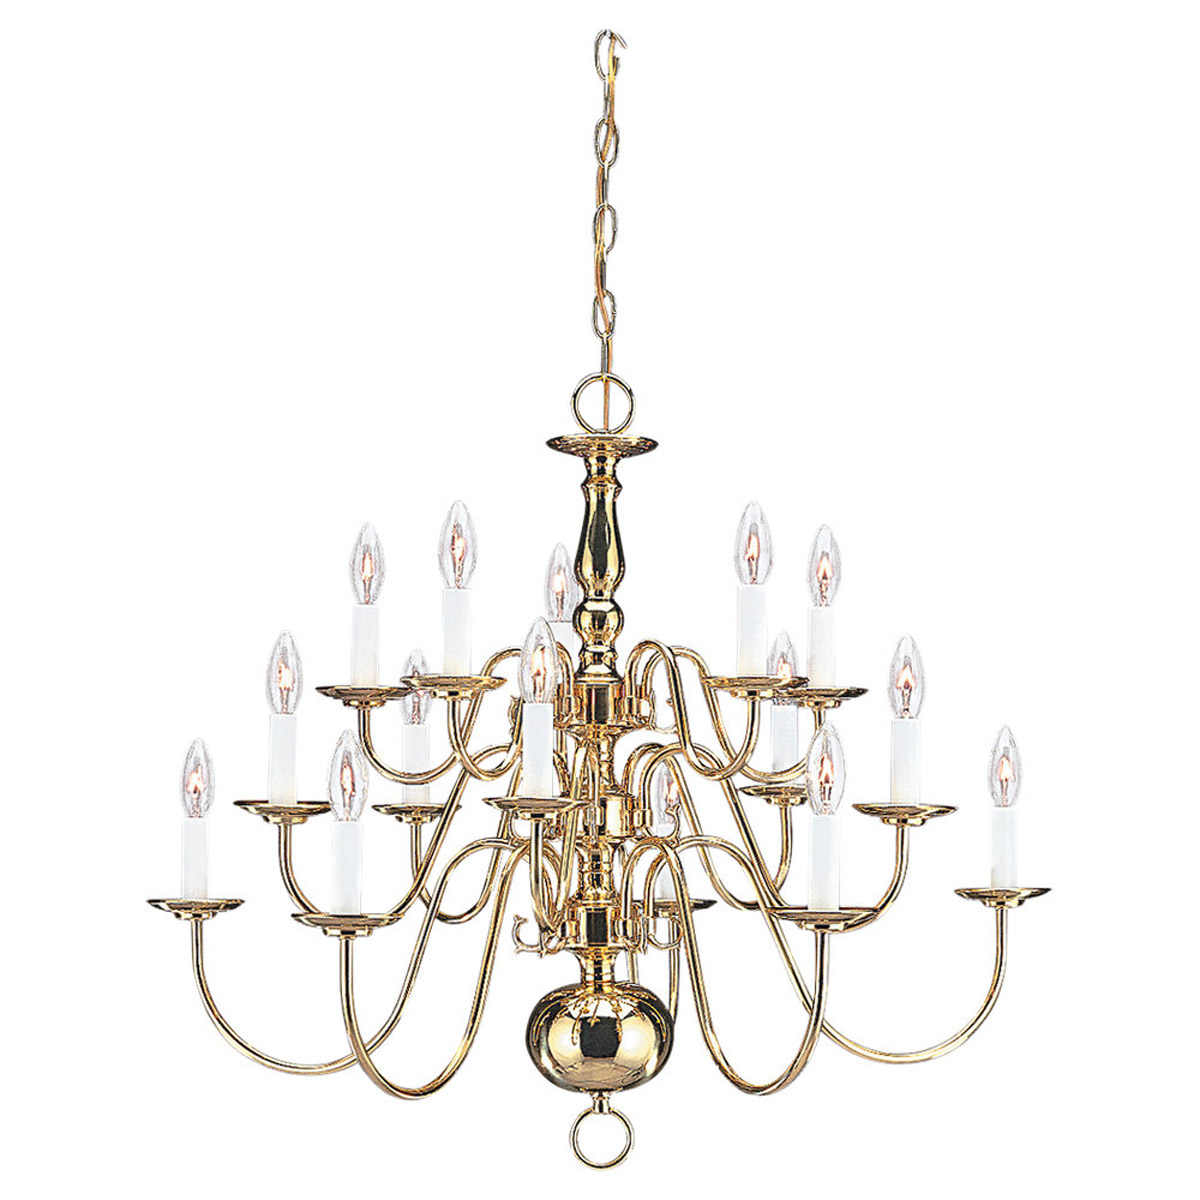 Sea Gull Lighting Traditional 15 Light Chandelier in Polished Brass 3414-02 photo